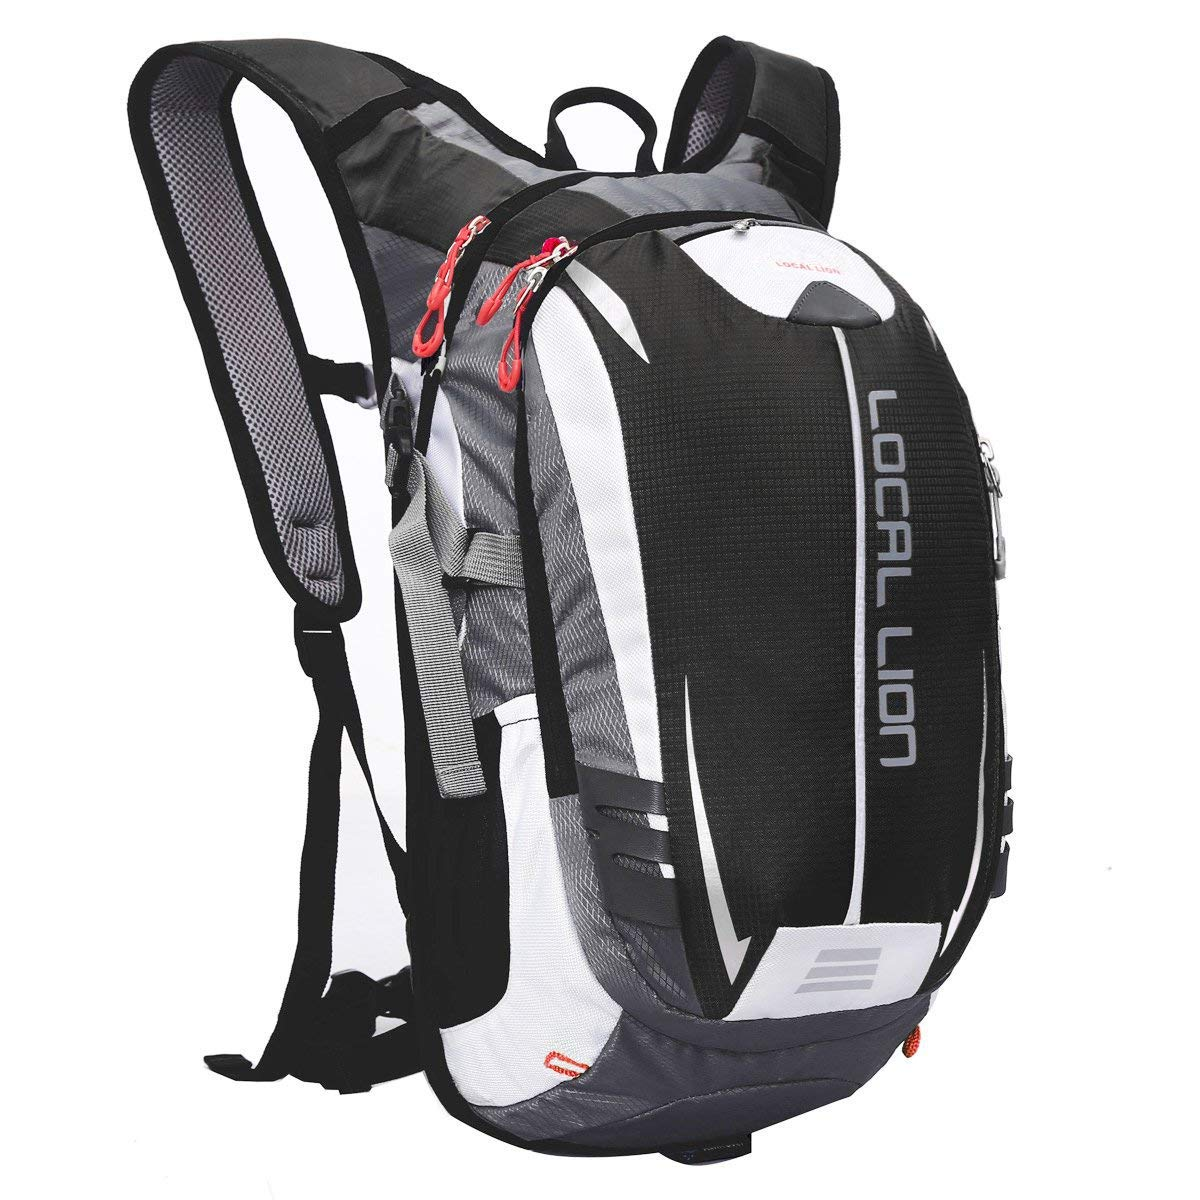 5b69329f981fc LOCAL LION Biking Backpack Cycling Backpack Riding Backpack Bike Rucksack  Outdoor Sports Daypack for Running Hiking Camping Travelling Ultralight Men  ...